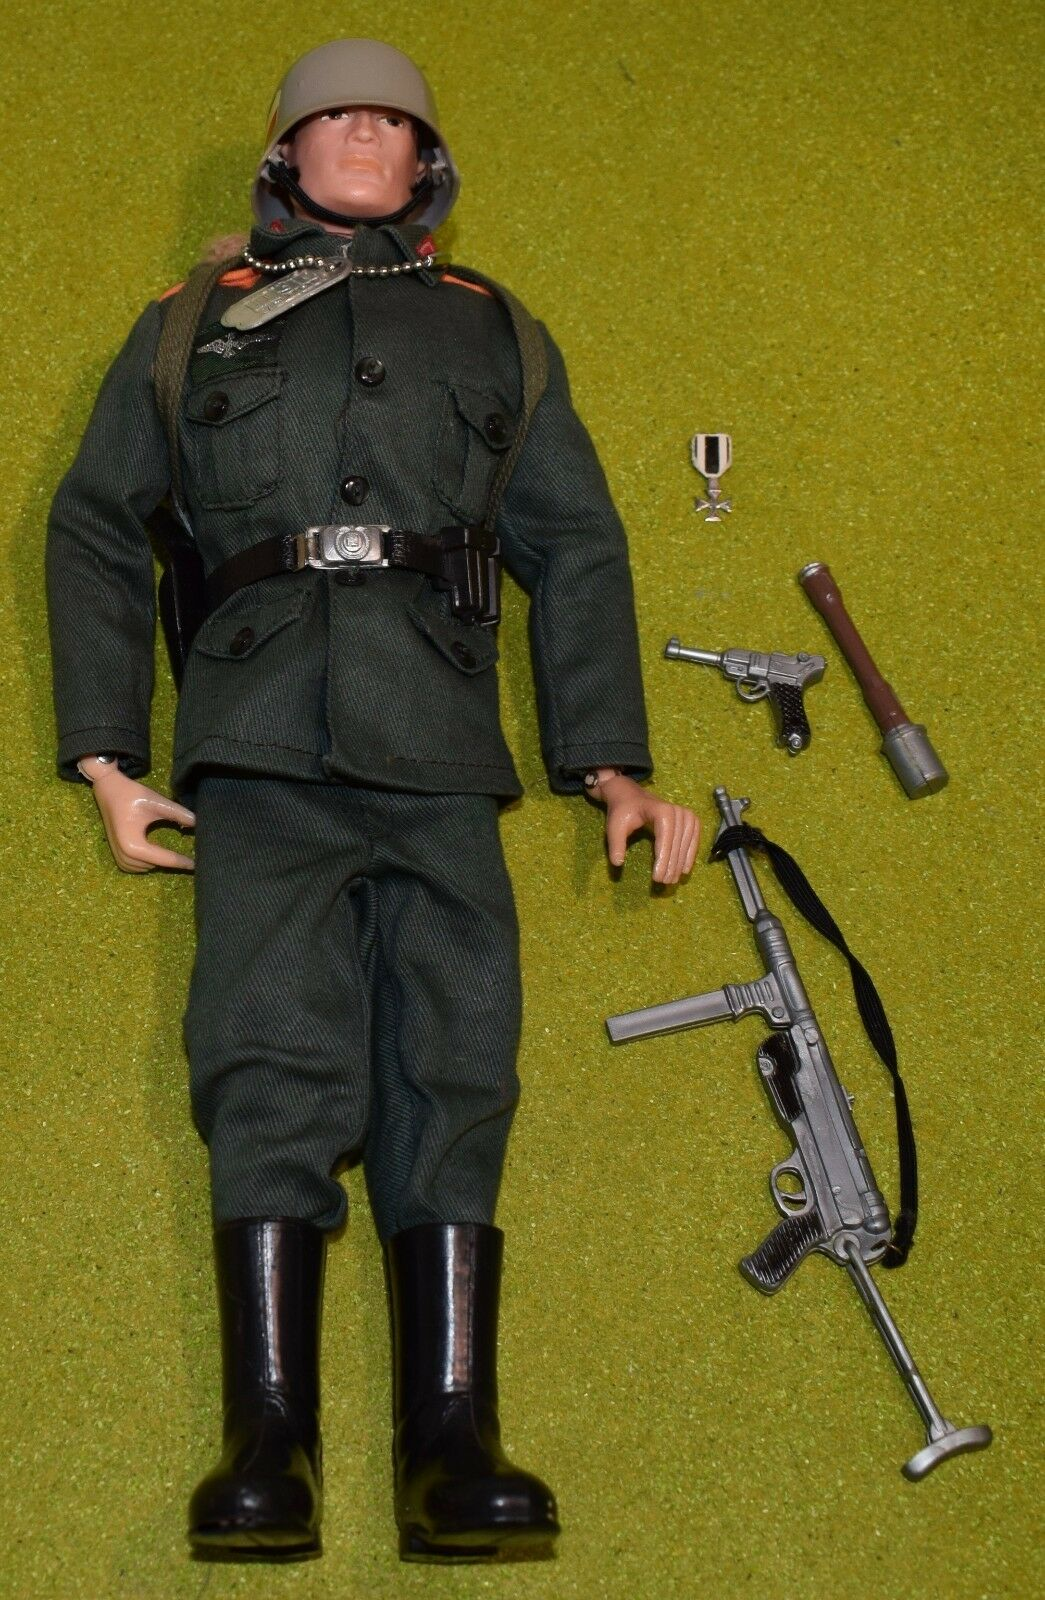 ORIGINAL VINTAGE ACTION MAN HARD HANDS GERMAN STORMTROOPER -439